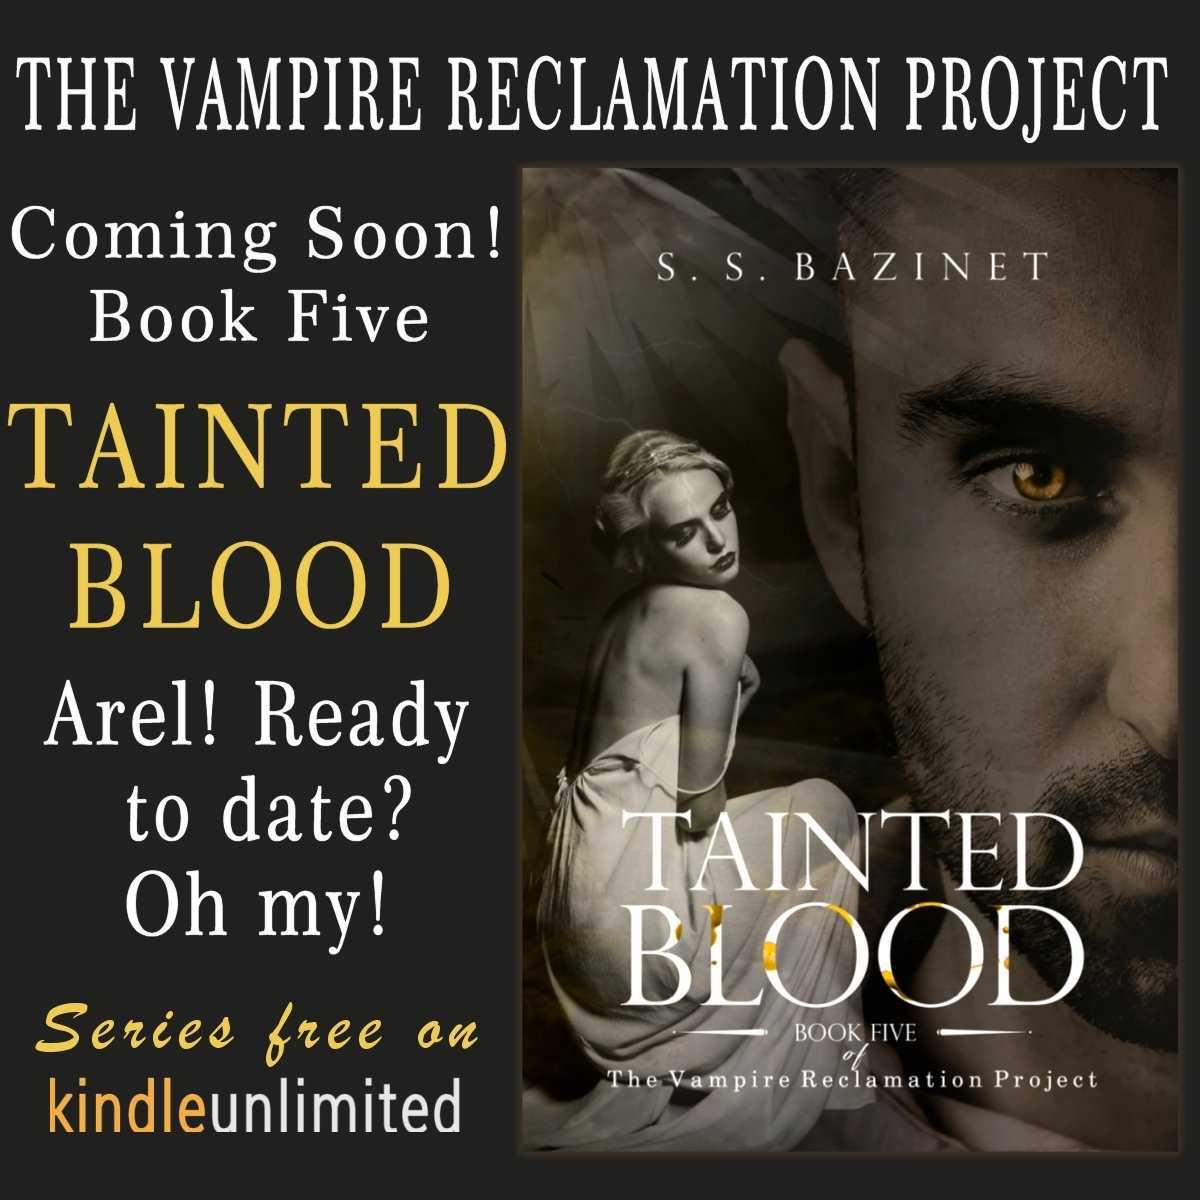 RT #TaintedBlood by @SSBazinet Arel thinks he&#39;s ready to date...oh my! 5th book in #series  https://www. amazon.com/gp/product/B01 KVJWM6O &nbsp; …  #IAN1 #IARTG #ASMSG #Selfworth #BookBoost #gr8books4u #mustread<br>http://pic.twitter.com/OWw03hjlsk